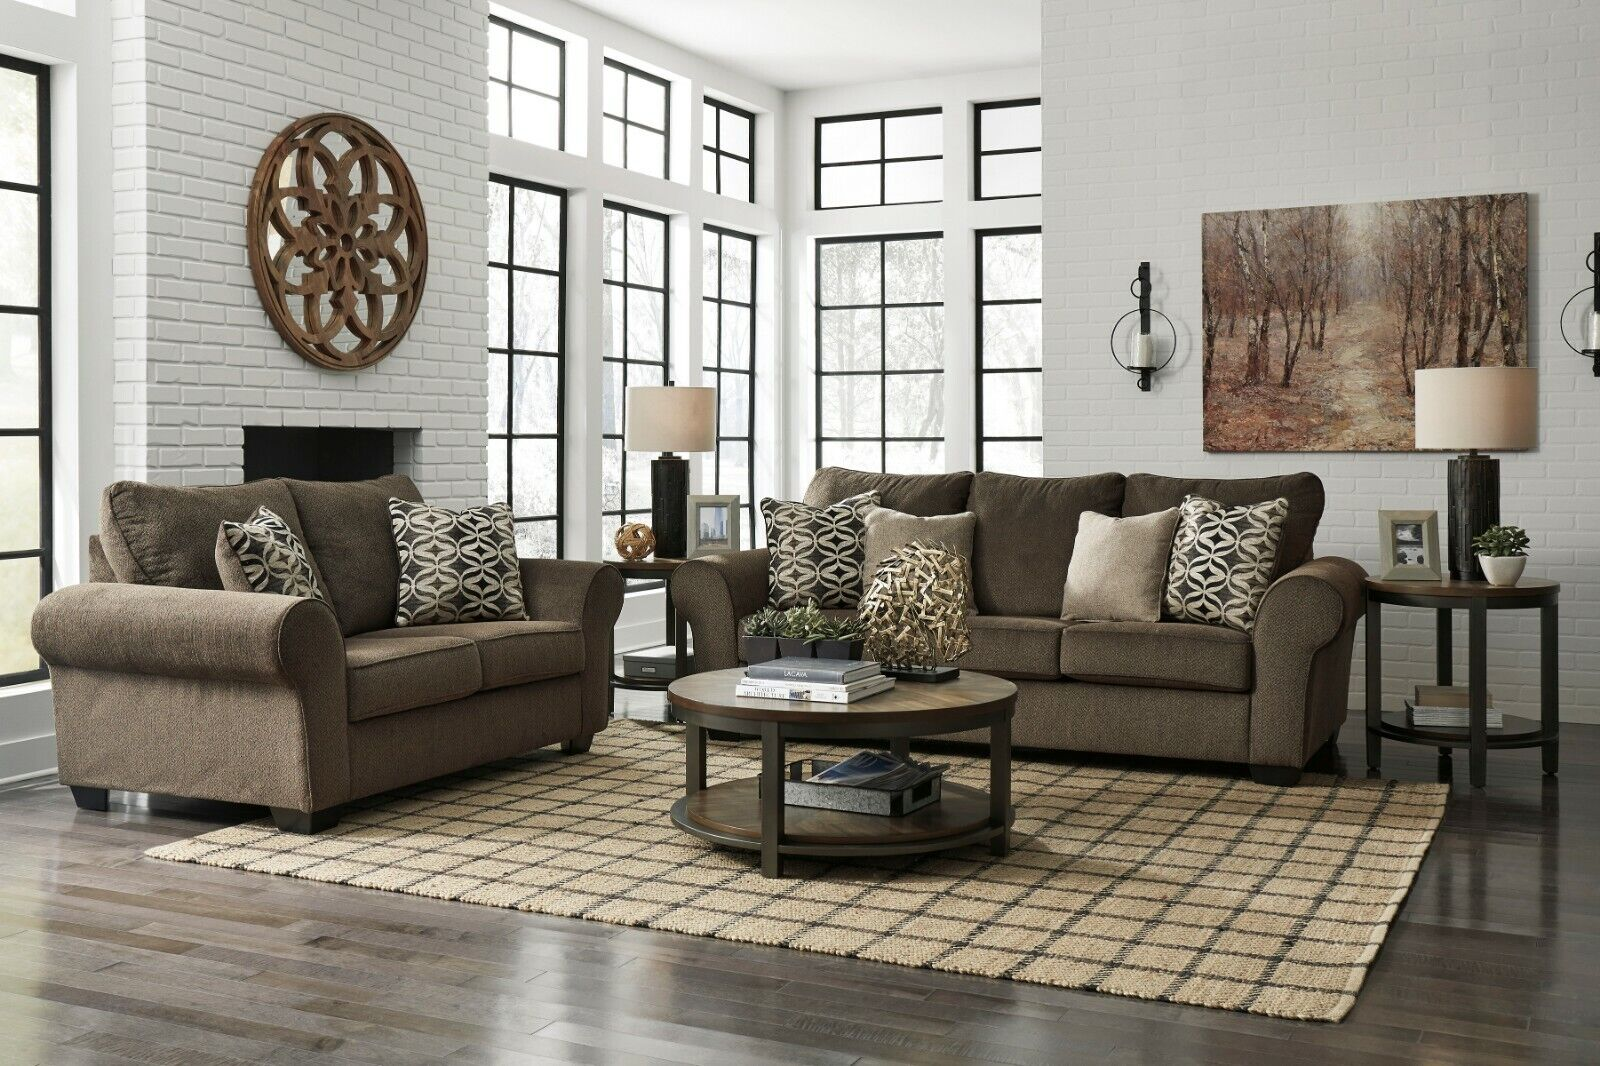 Ashley Furniture Nesso Sofa and Loveseat Living Room Set